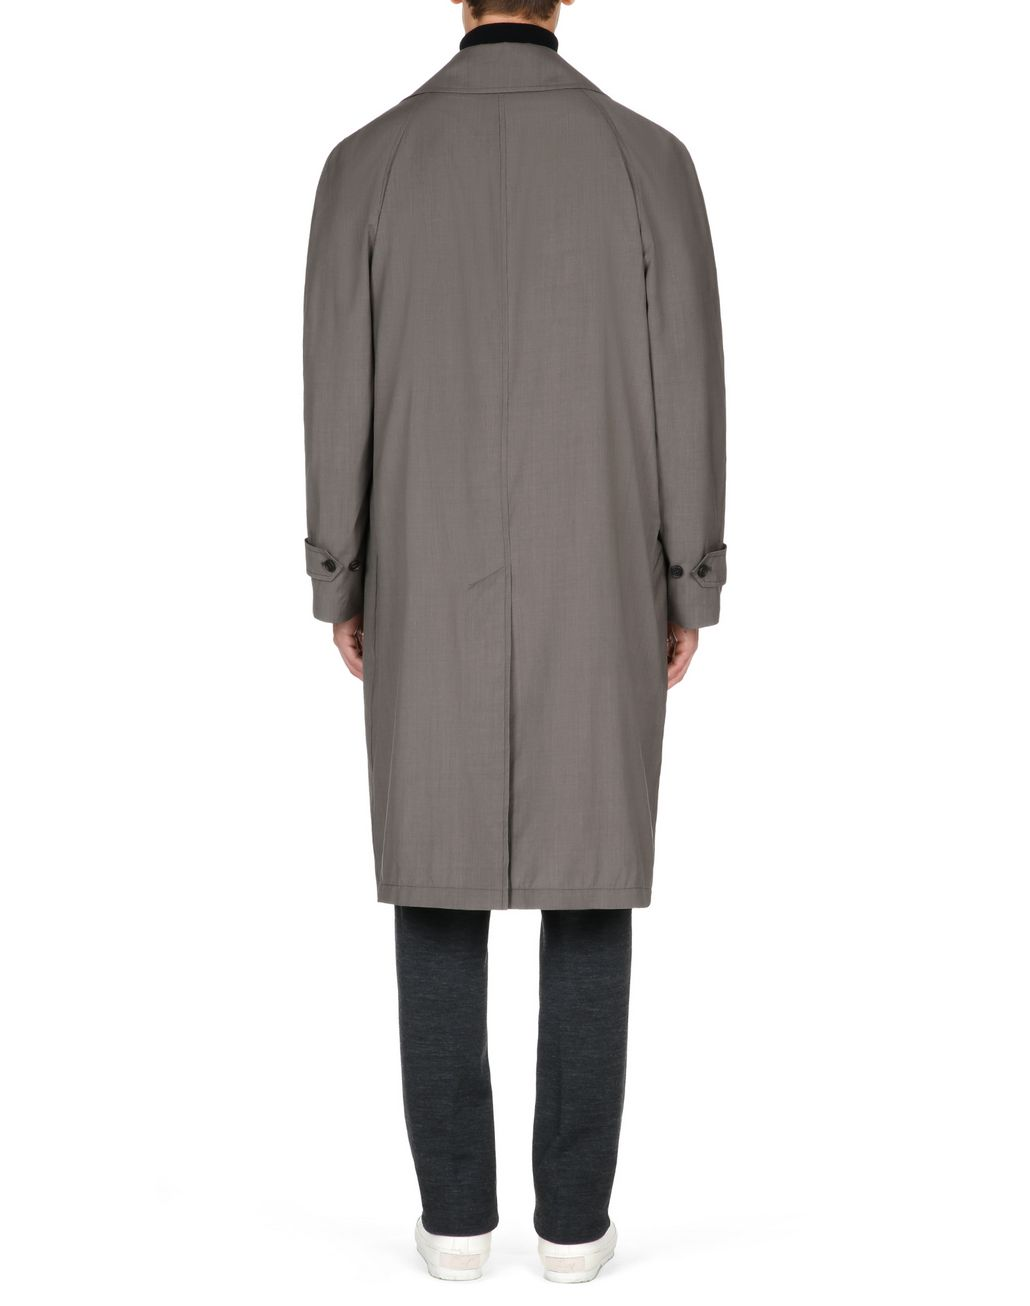 BRIONI Trench imperméable en laine et soie marron Manteau [*** pickupInStoreShippingNotGuaranteed_info ***] d